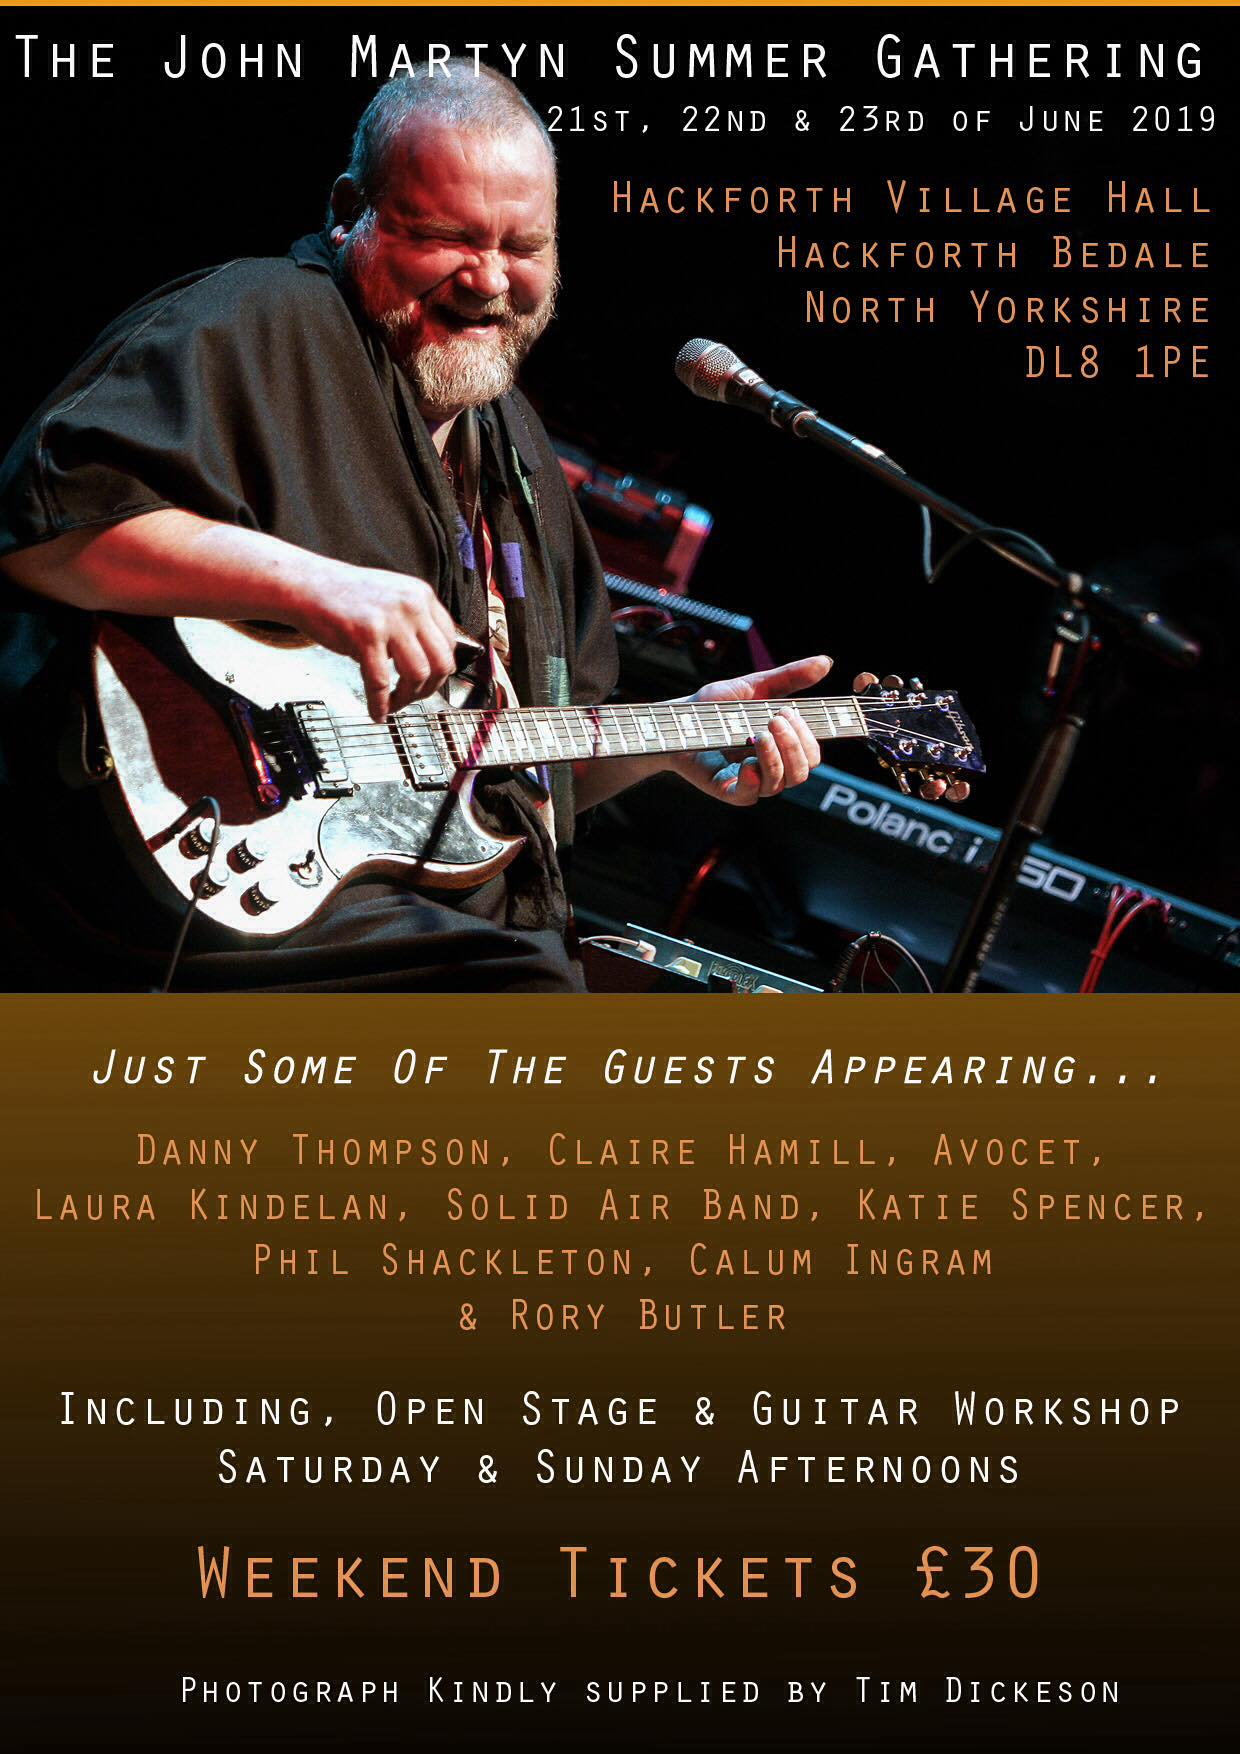 The John Martyn Summer Gathering 2019 banner image